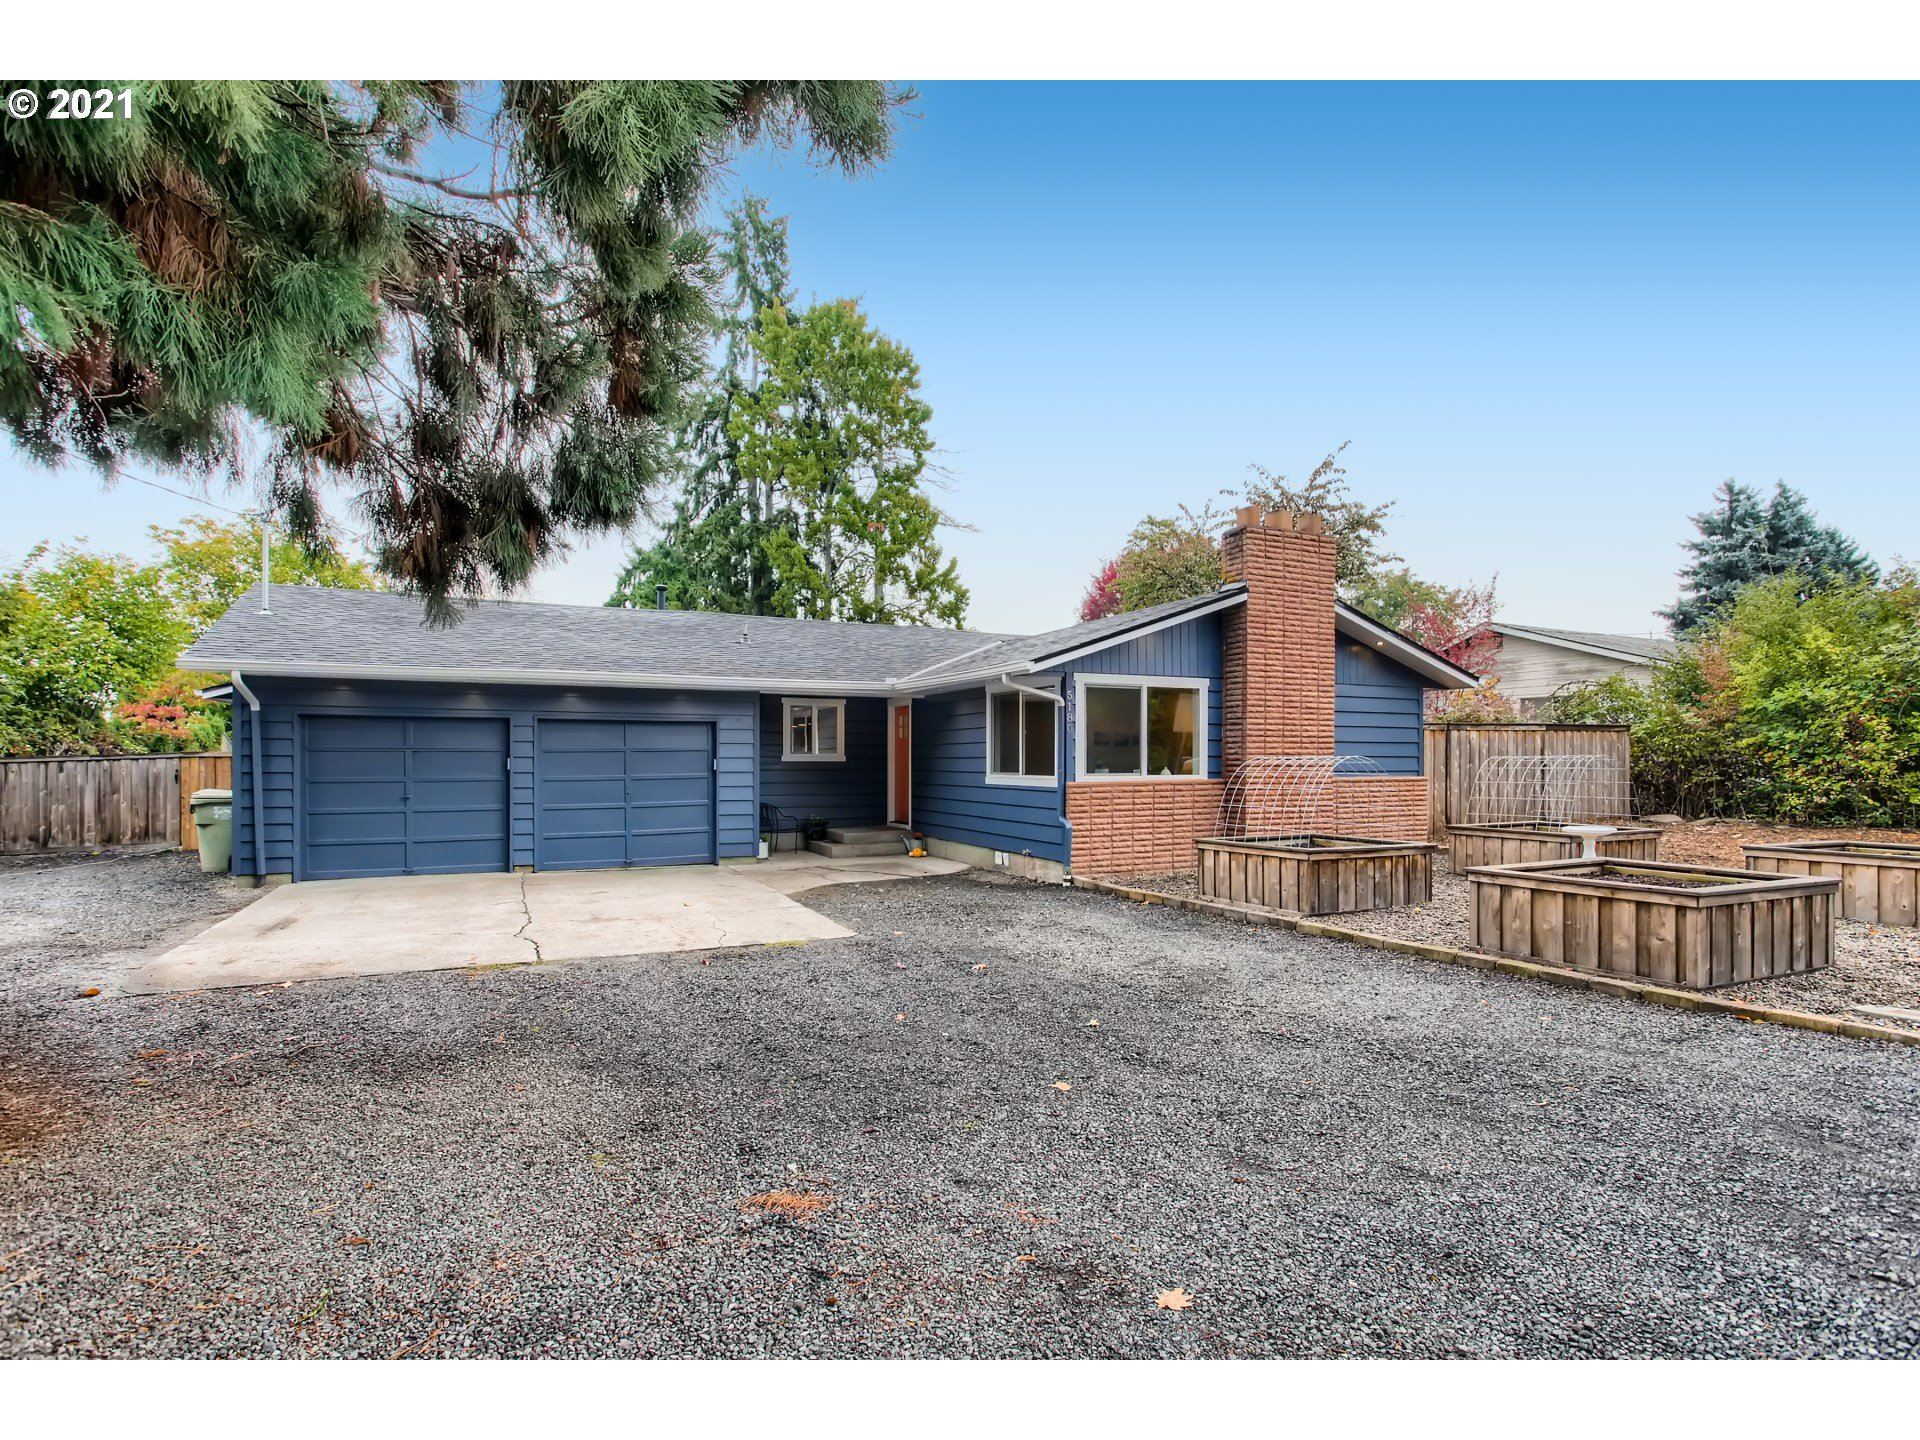 Photo of 5180 SW 192ND AVE, Aloha, OR 97078 (MLS # 21437579)